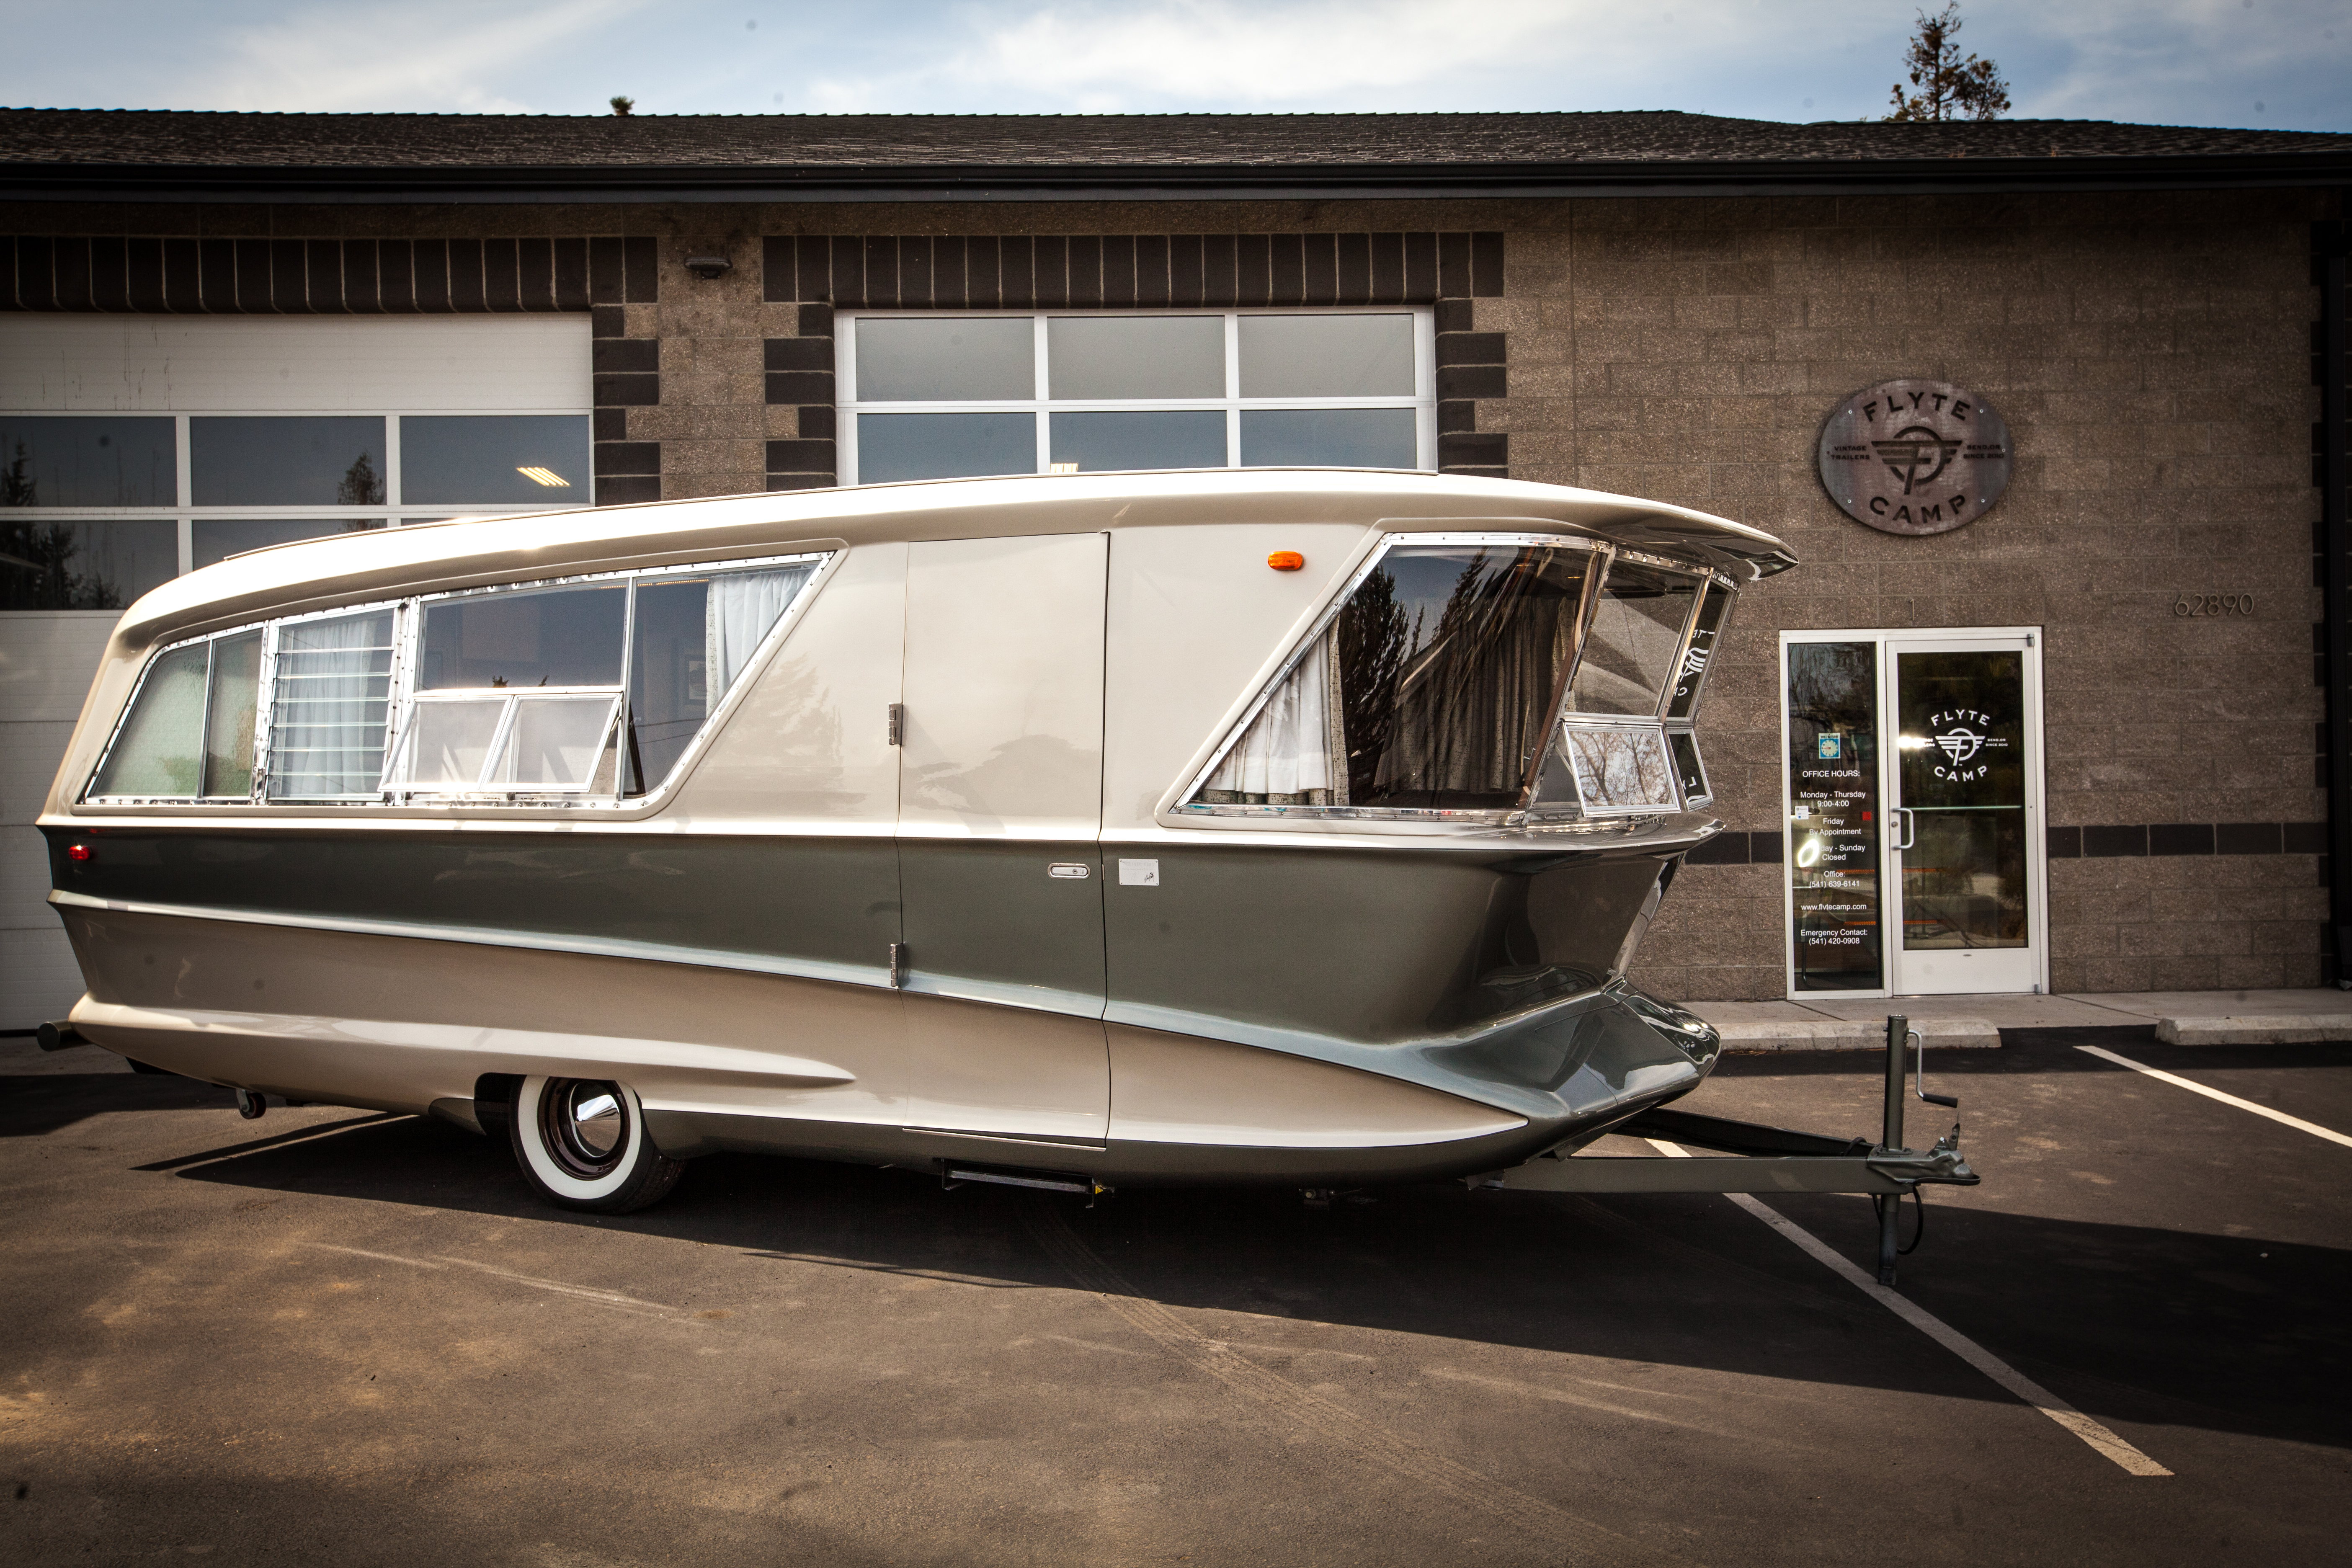 Curbed Archives - RVs, campers, and trailers - Page 3